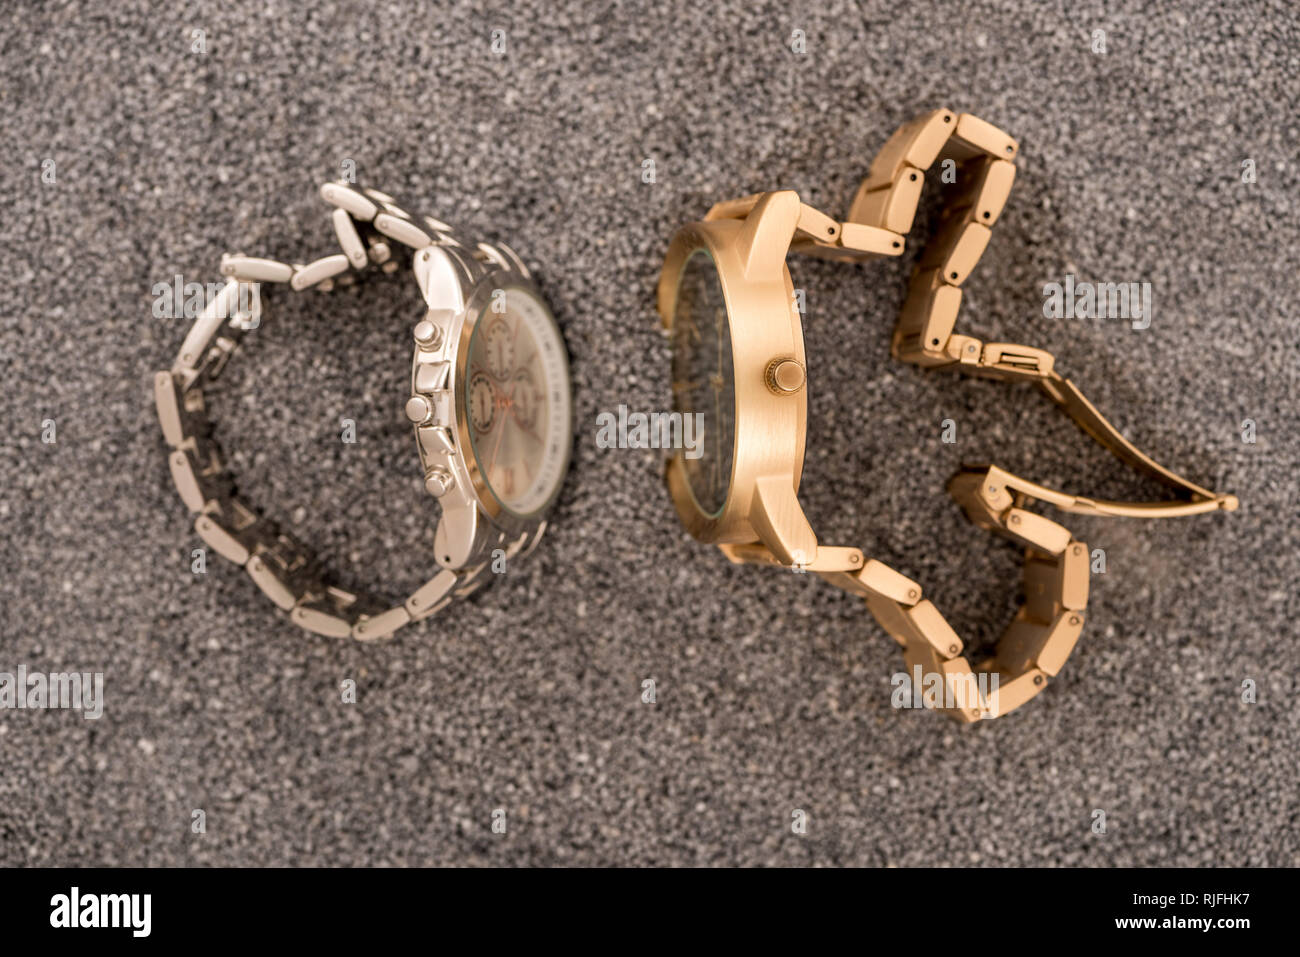 top view of wristwatches lying on sand - Stock Image